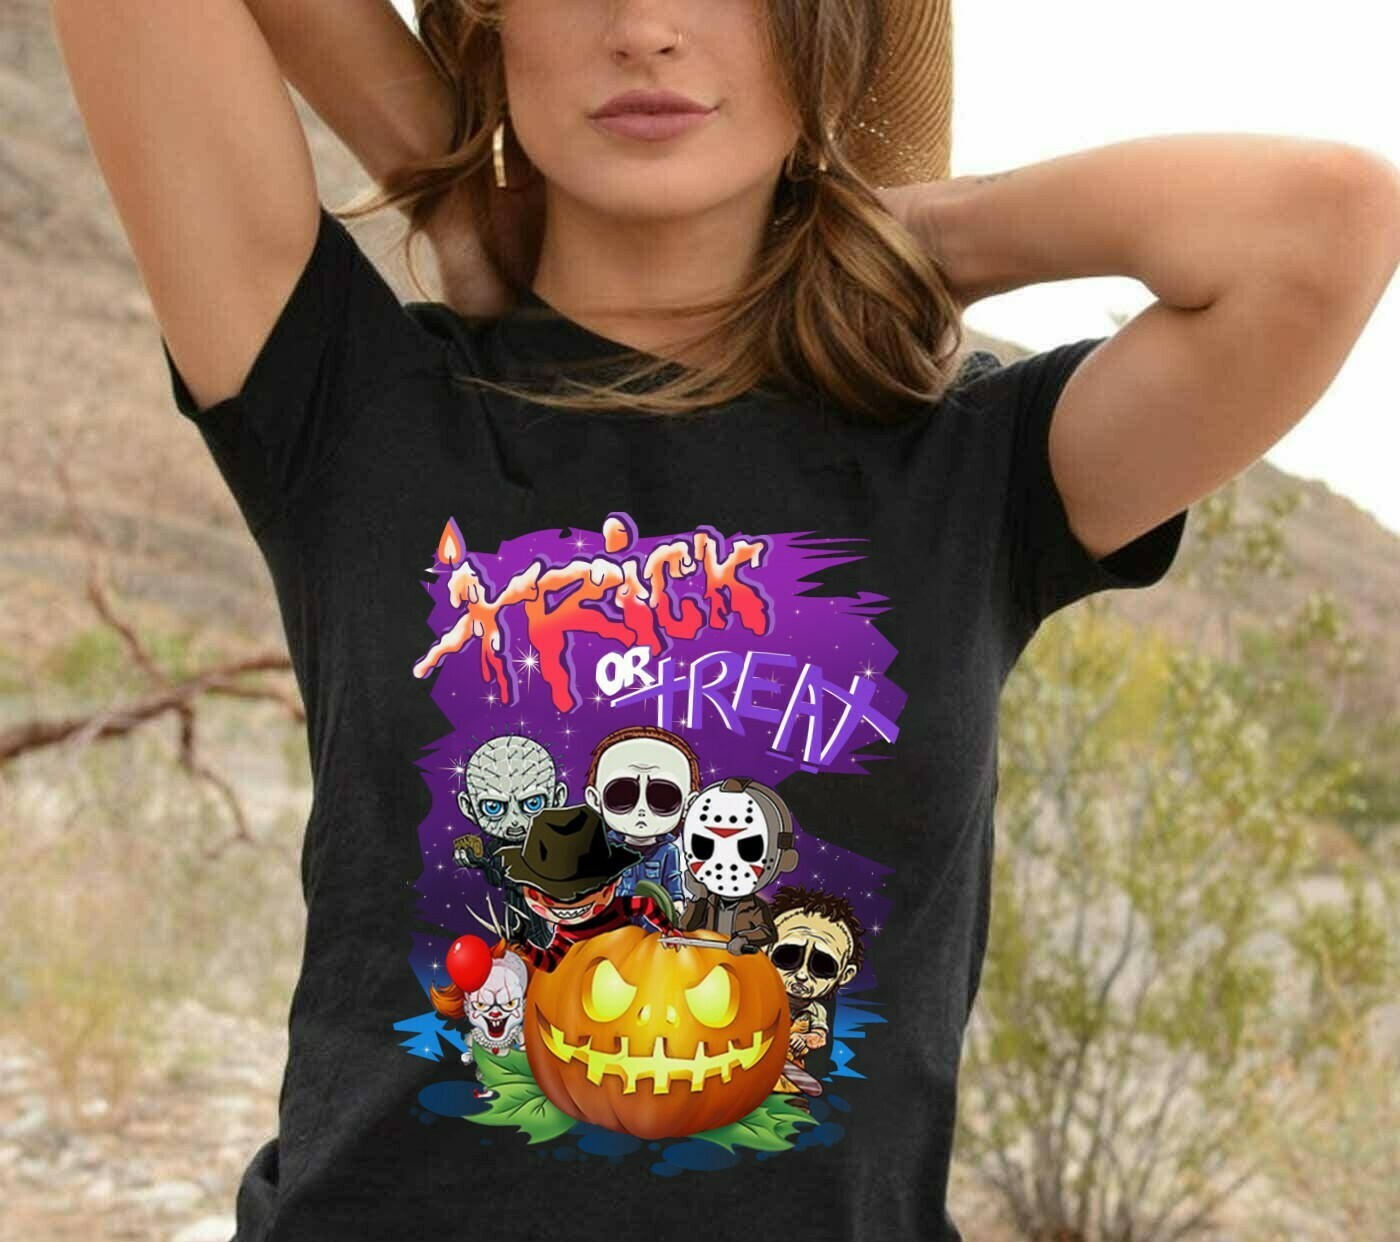 Chibi Horror Villains Trick Or Treat Halloween Pumpkin Friday The 13th Movie Villains Halloween Horror Movie Mashup Squad Unisex T-shirt Long Sleeve Sweatshirt Hoodie Jolly Family Gifts